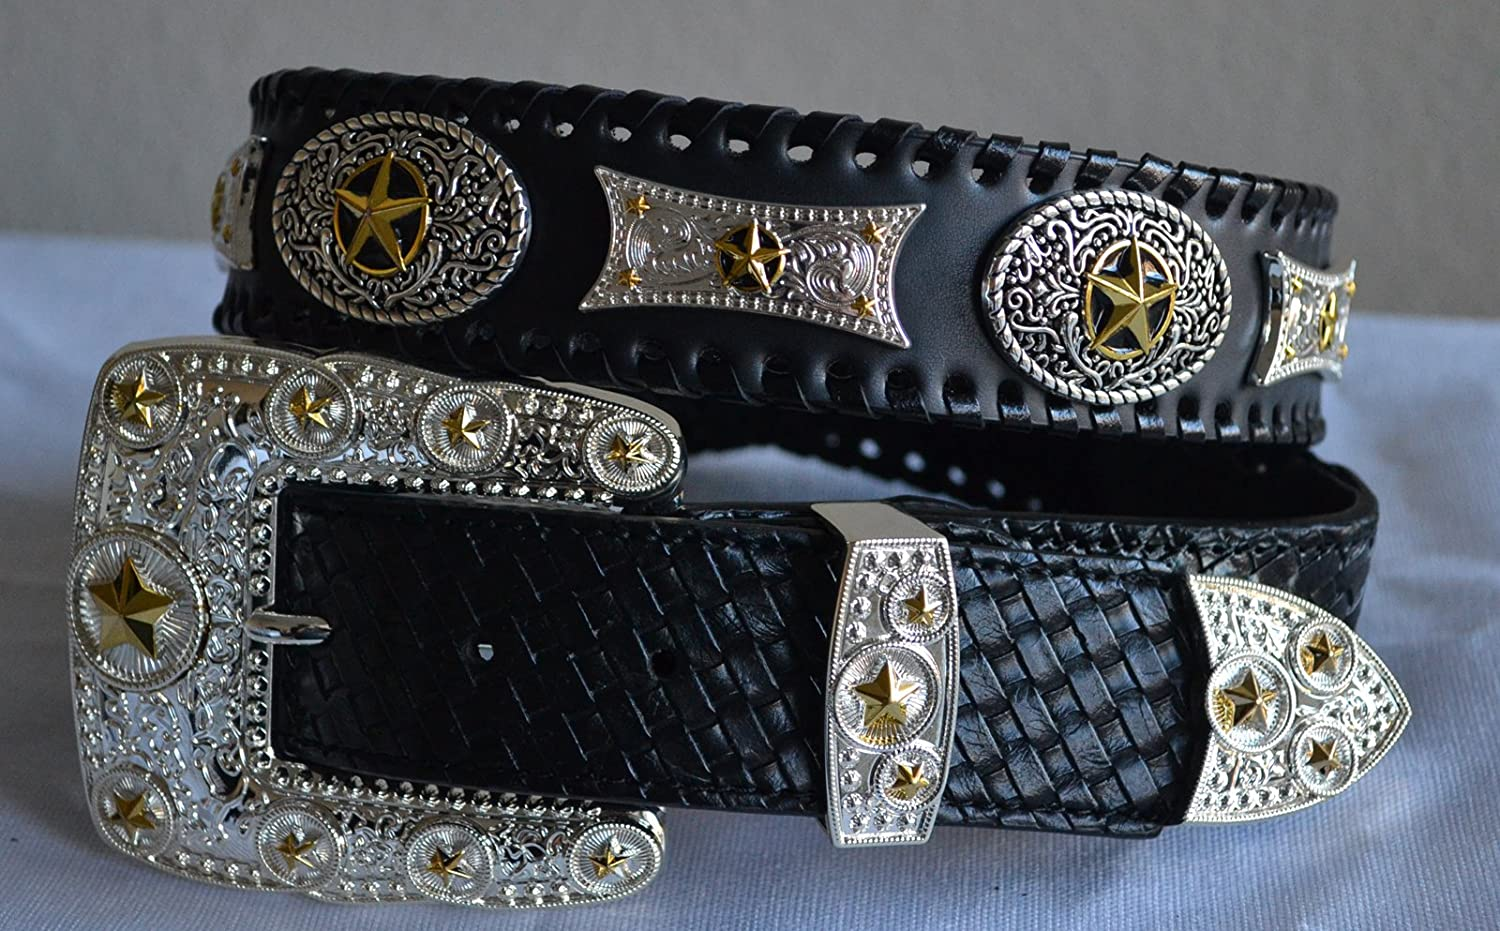 Brown western texas star golden rodeo show buckle belt leather M L XL